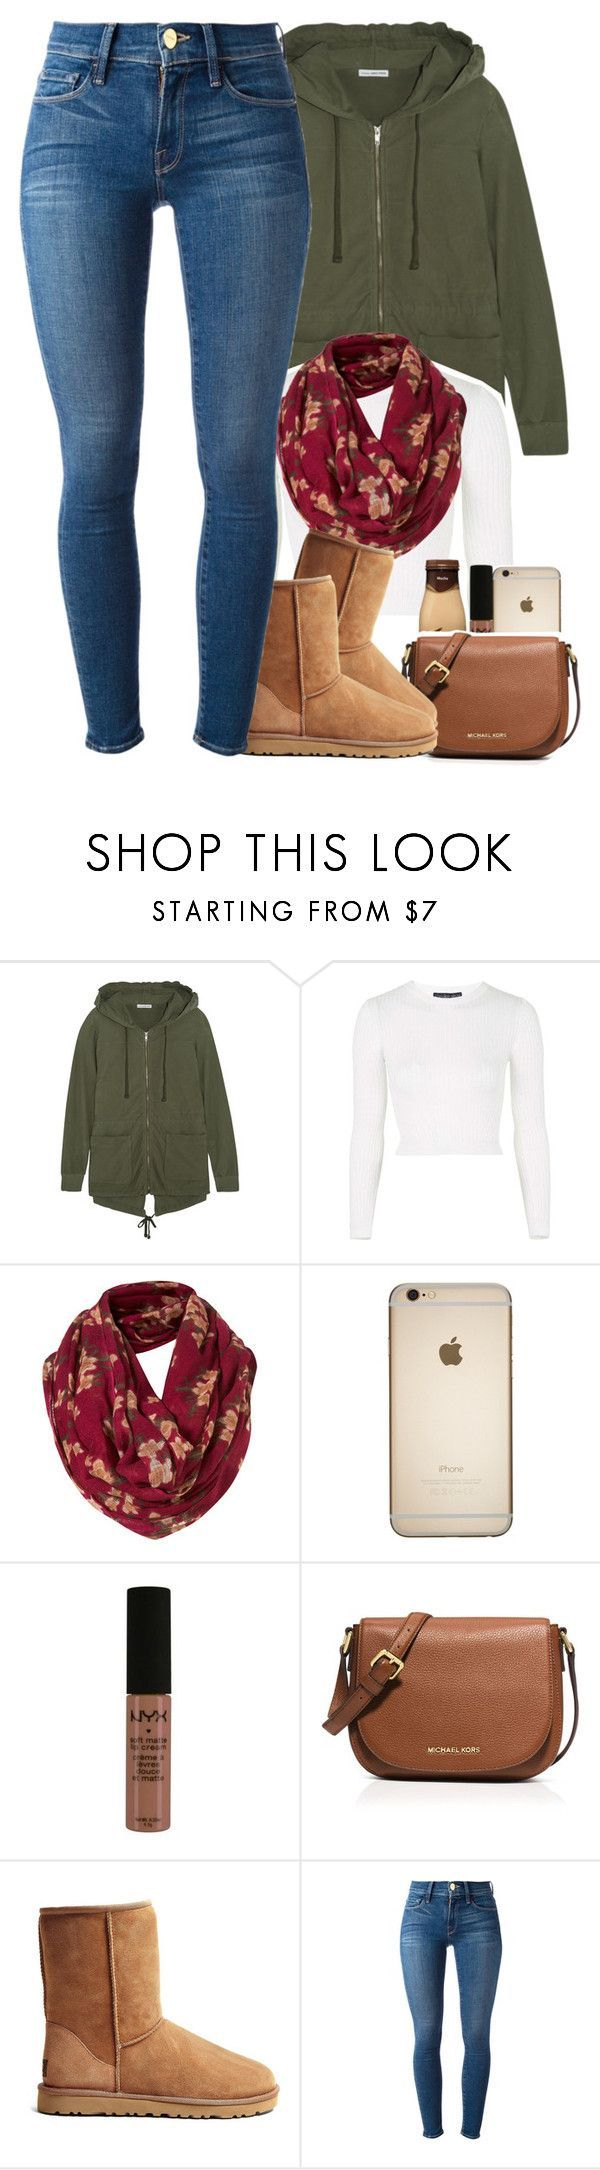 """sorry I haven't been posting ; uni work is keeping me busy"" by daisym0nste ❤ liked on Polyvore featuring James Perse, Topshop, Mulberry, NYX, MICHAEL Michael Kors, UGG Australia and Frame Denim"